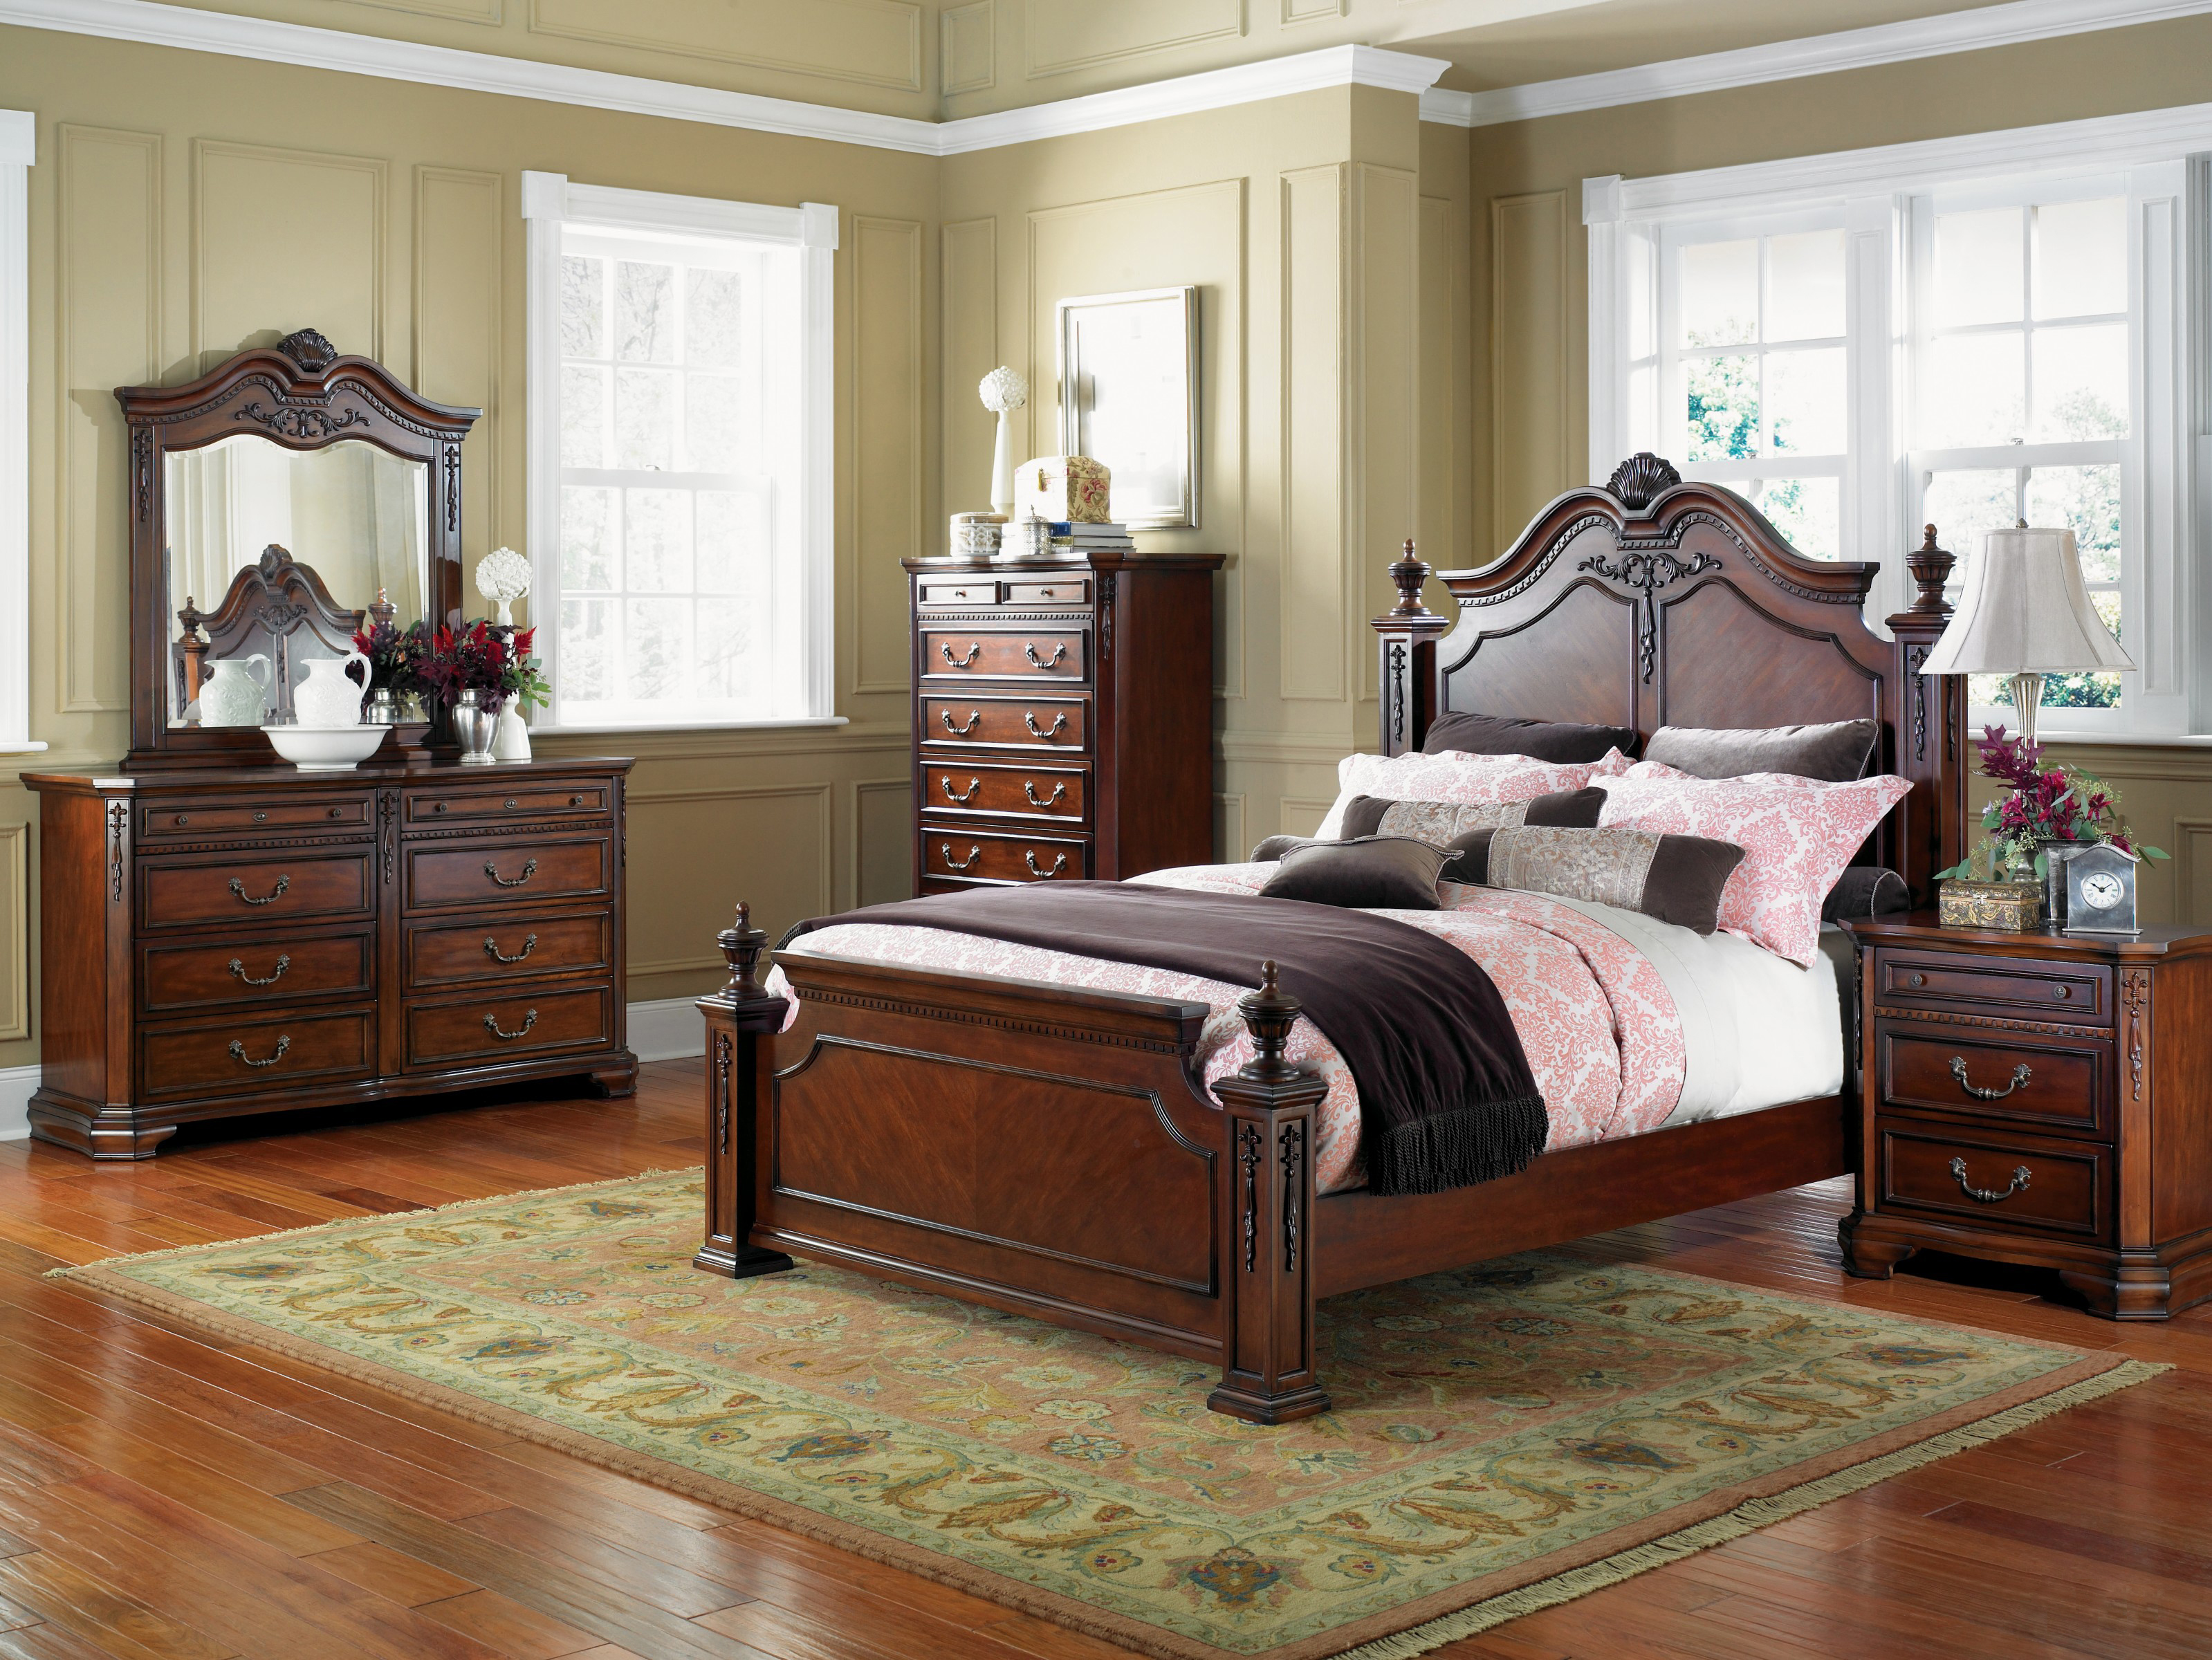 Amazing Bedroom Furniture 3198 x 2400 · 3937 kB · jpeg